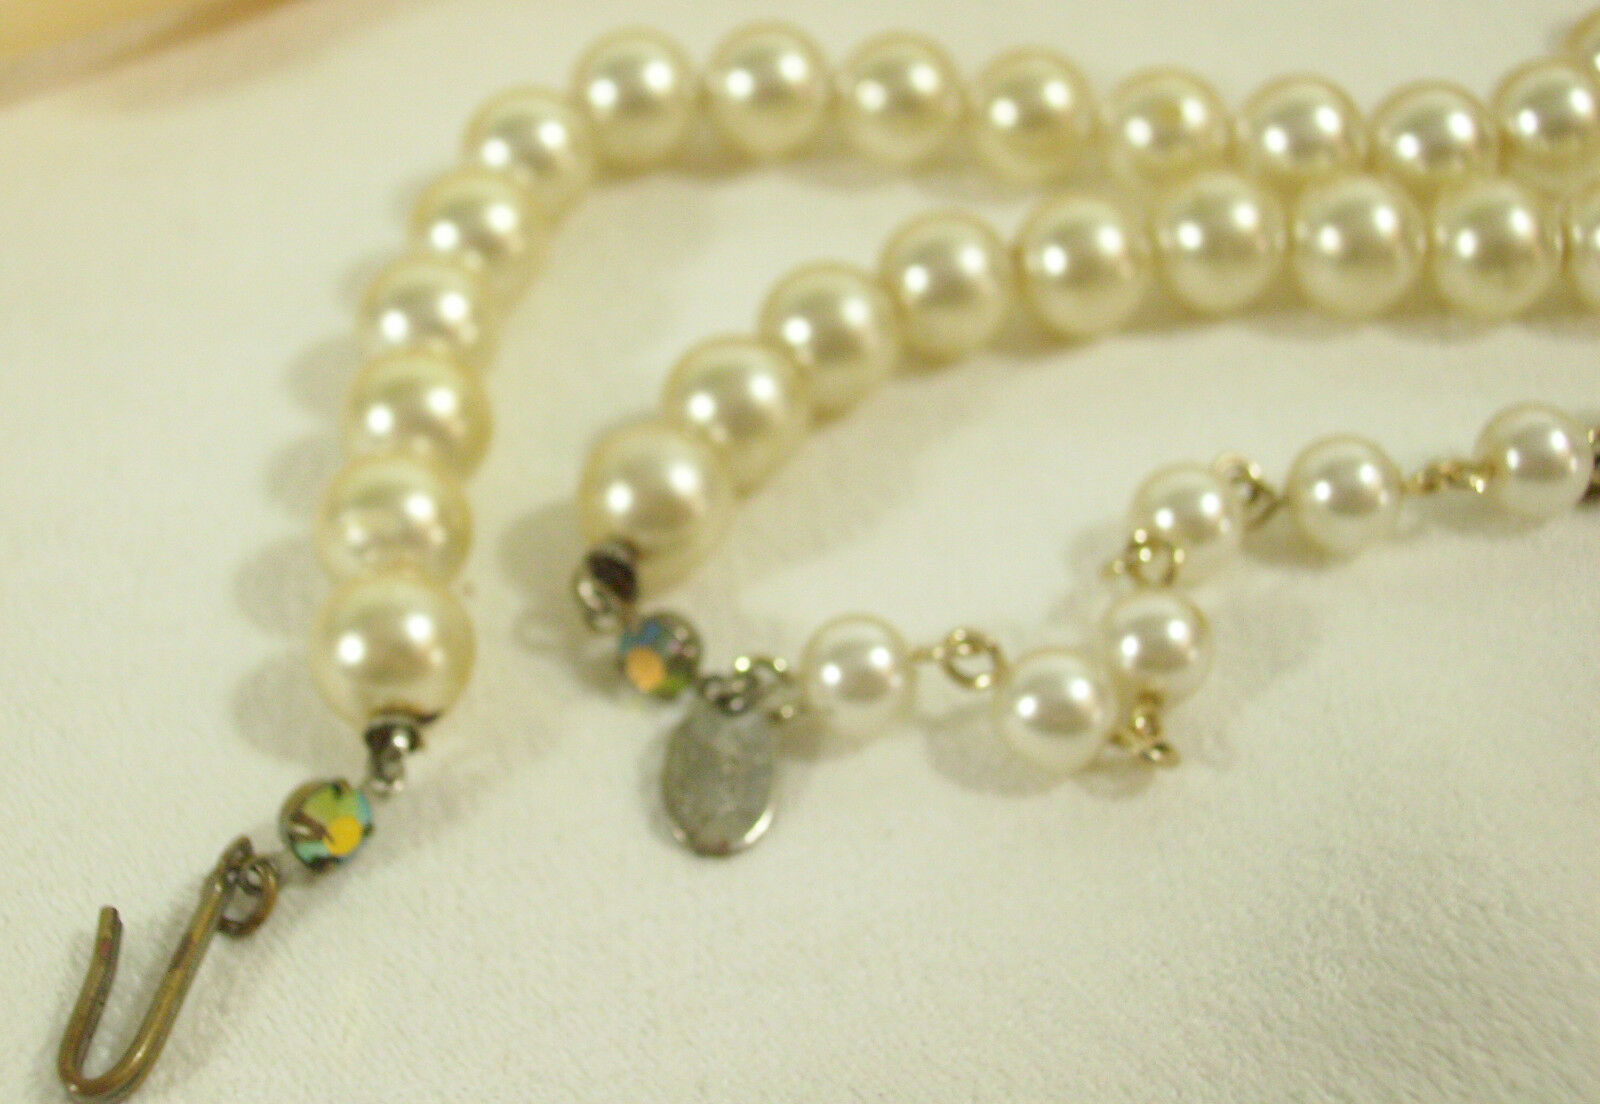 PARK LANE Faux Pearl Necklace Strand Classic Hand Knotted String Choker Vintage